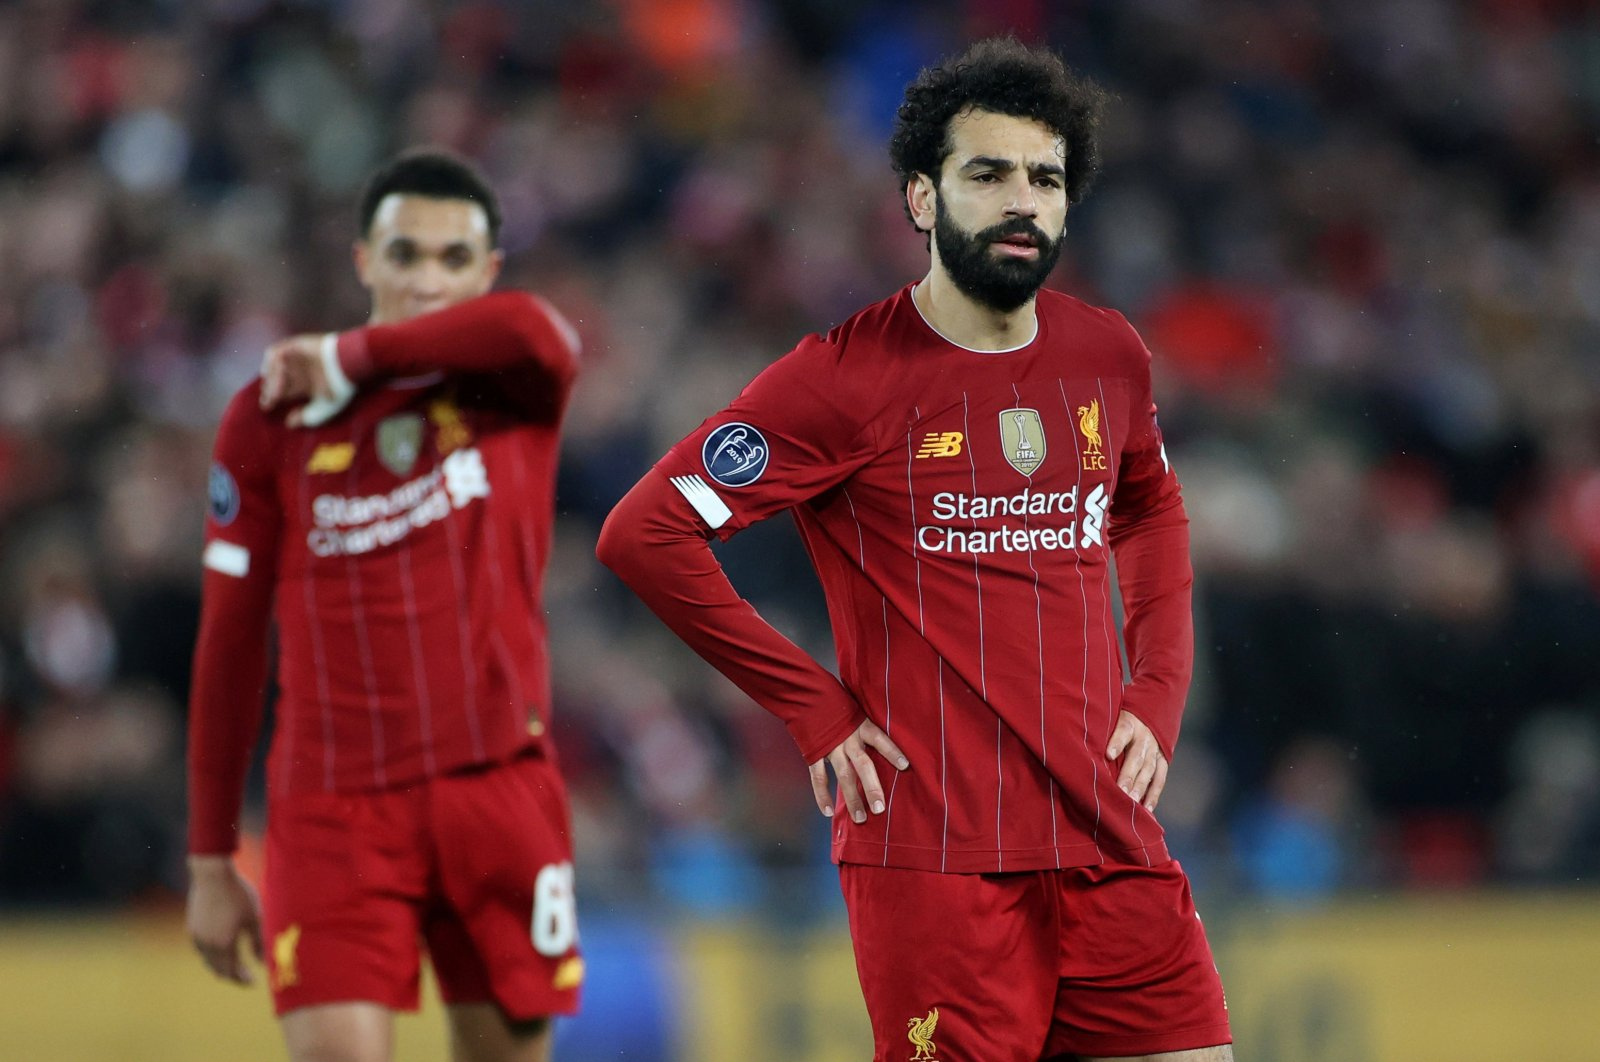 Liverpool's Mohamed Salah reacts during a Champions League match Against Atletico Madrid, Liverpool, Britain, March 11, 2020. (Reuters Photo)